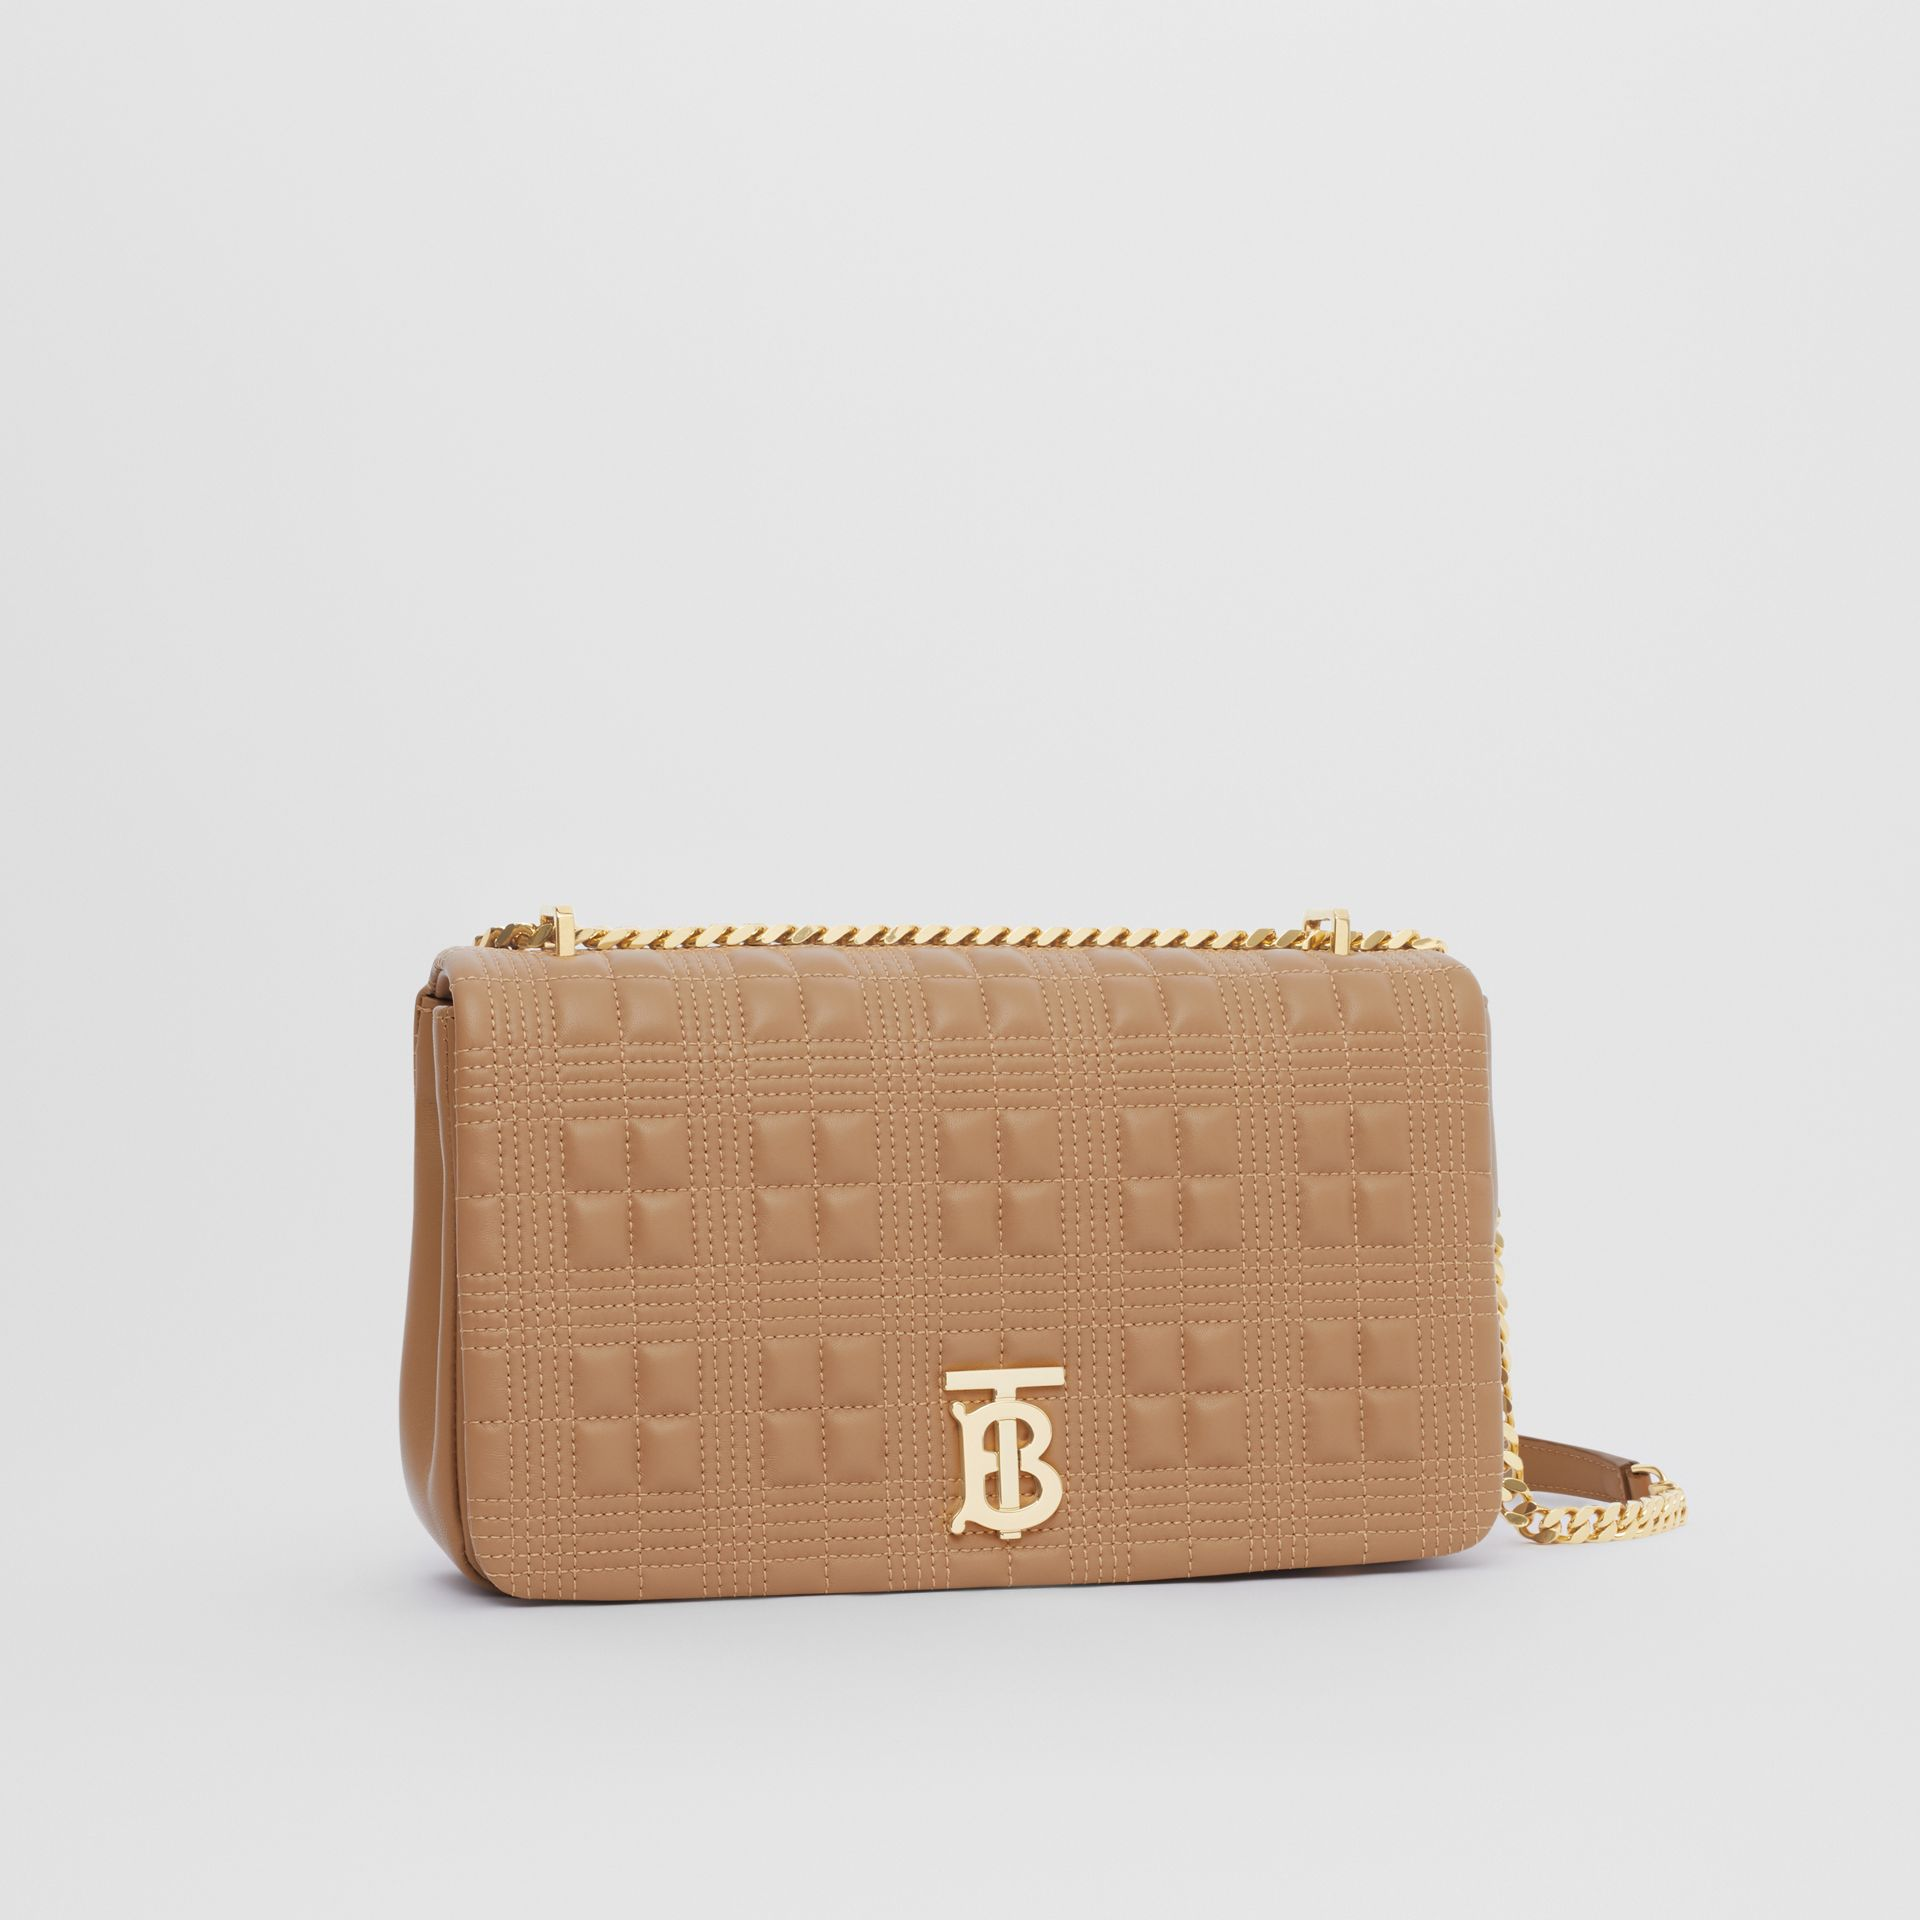 Medium Quilted Lambskin Lola Bag in Camel/light Gold - Women | Burberry Australia - gallery image 6